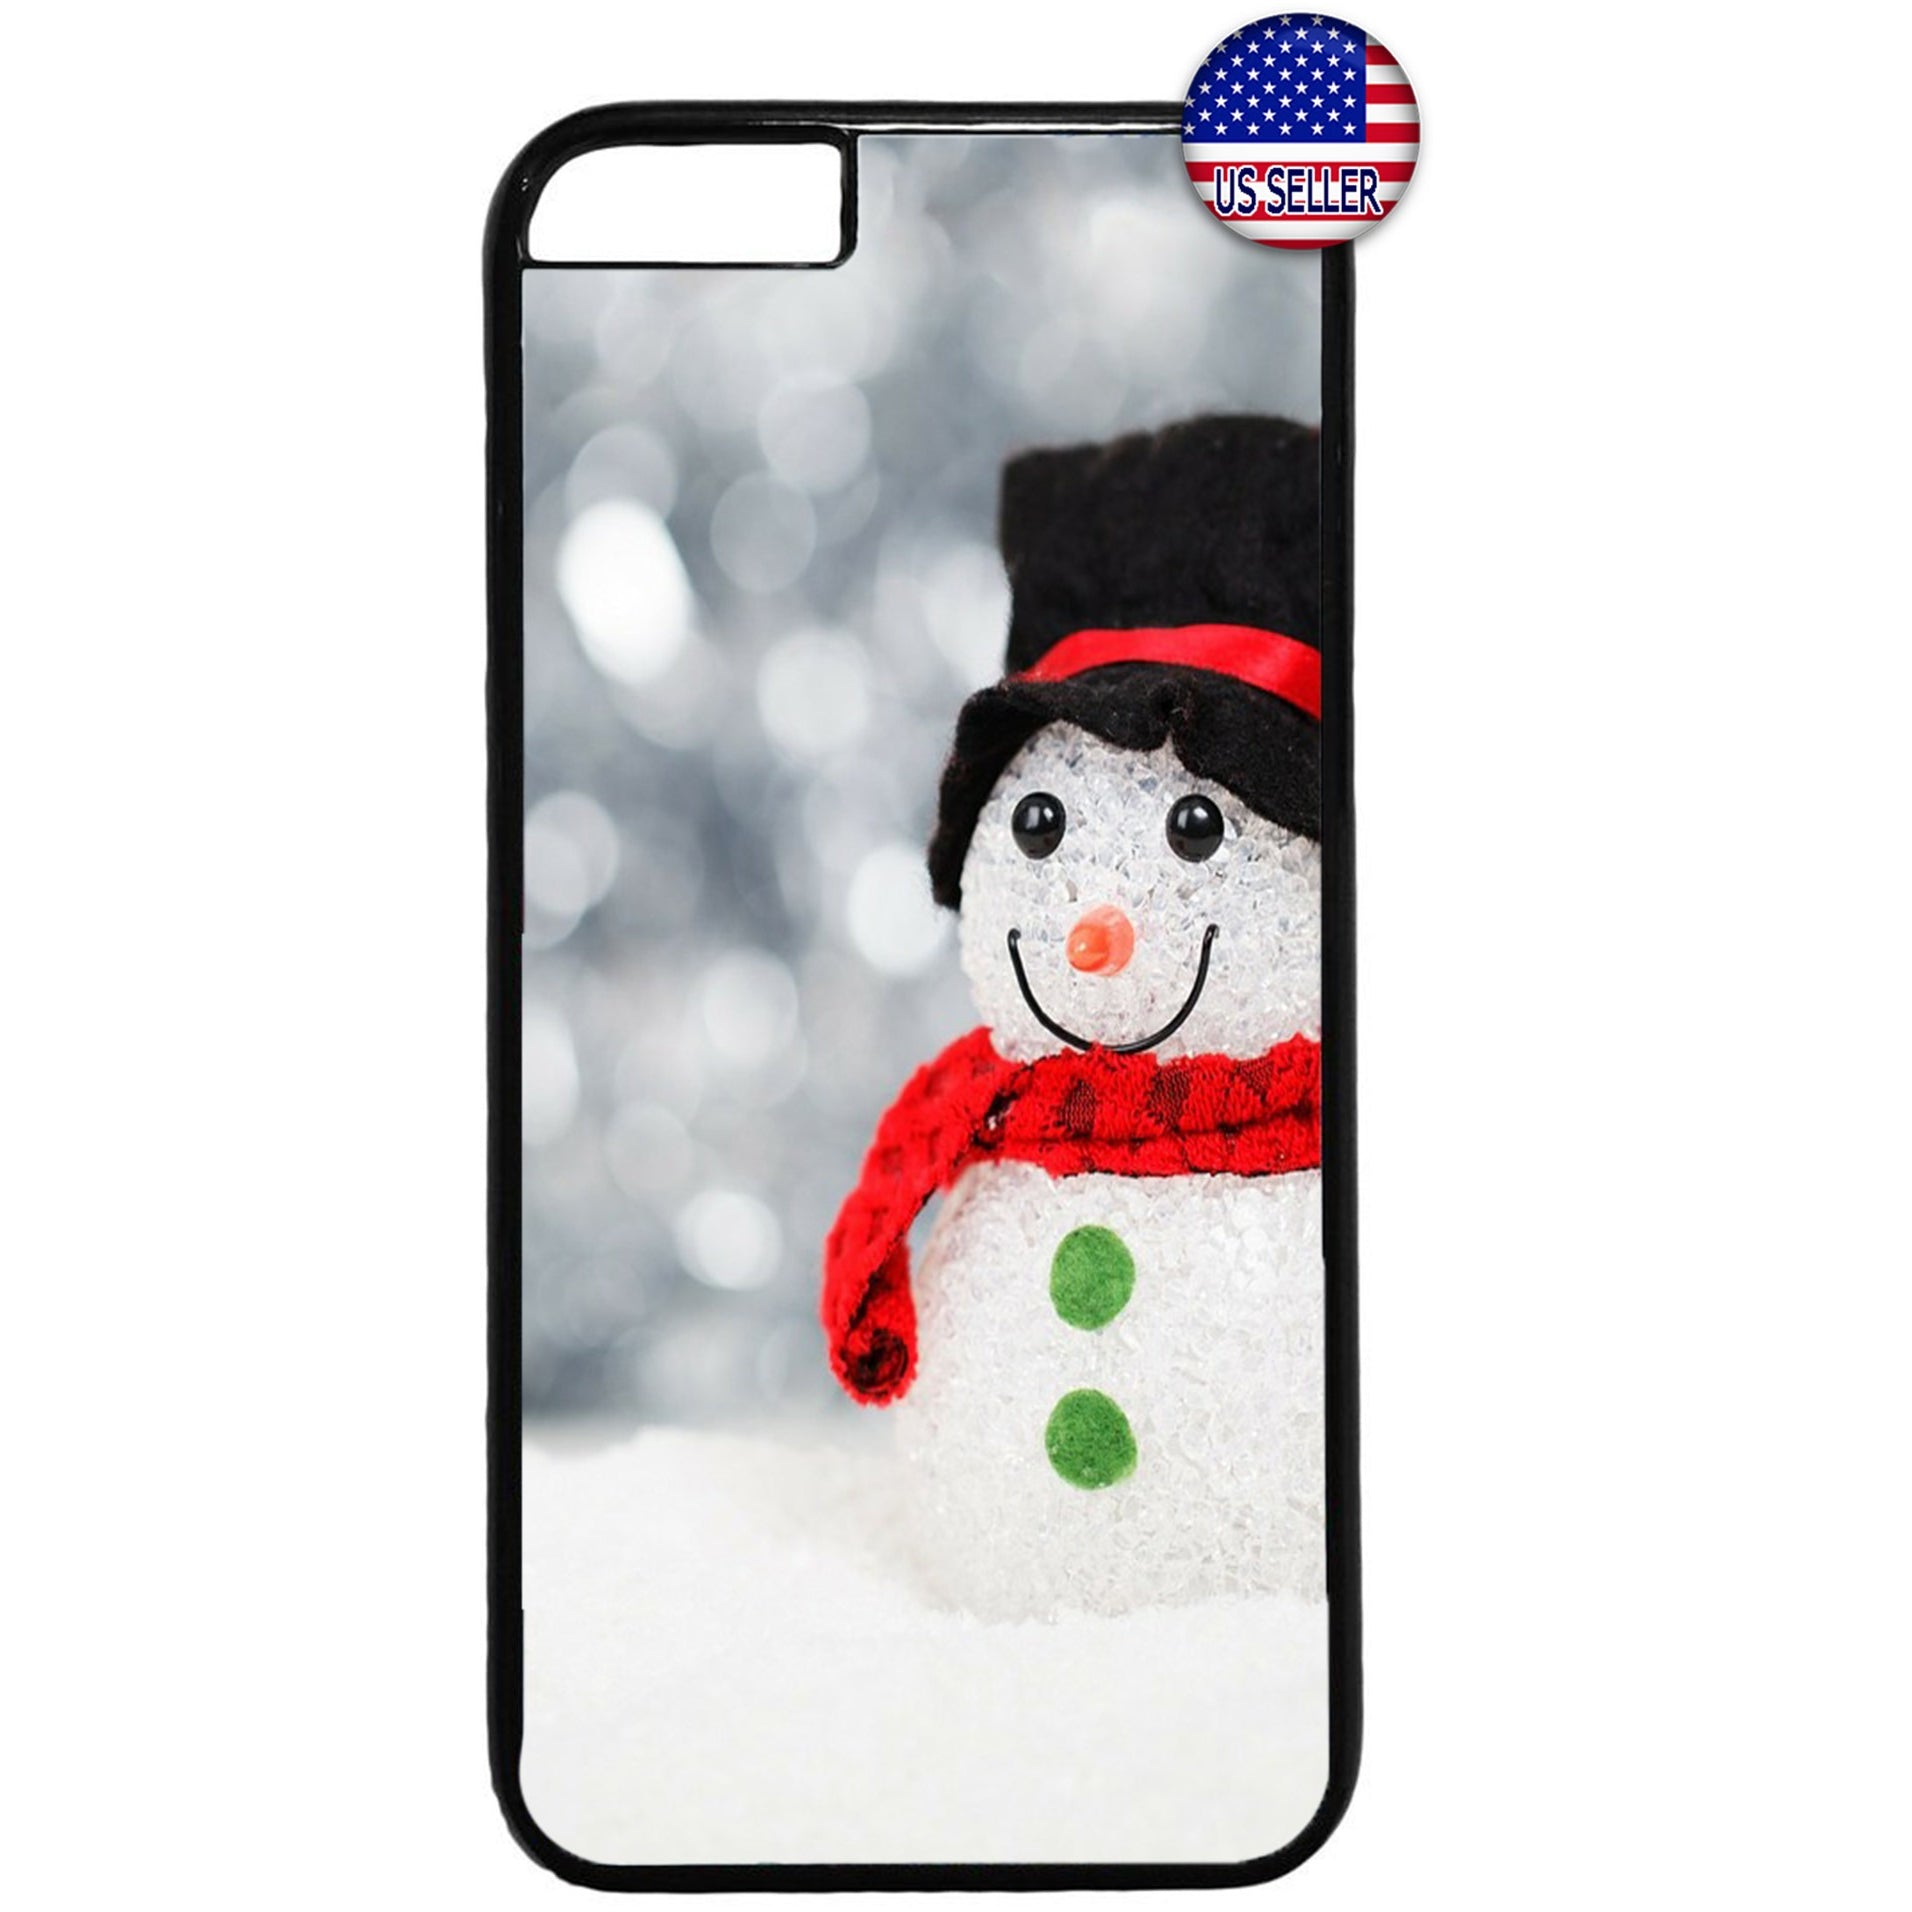 Merry Christmas Snowman Gift Rubber Case Cover For Iphone